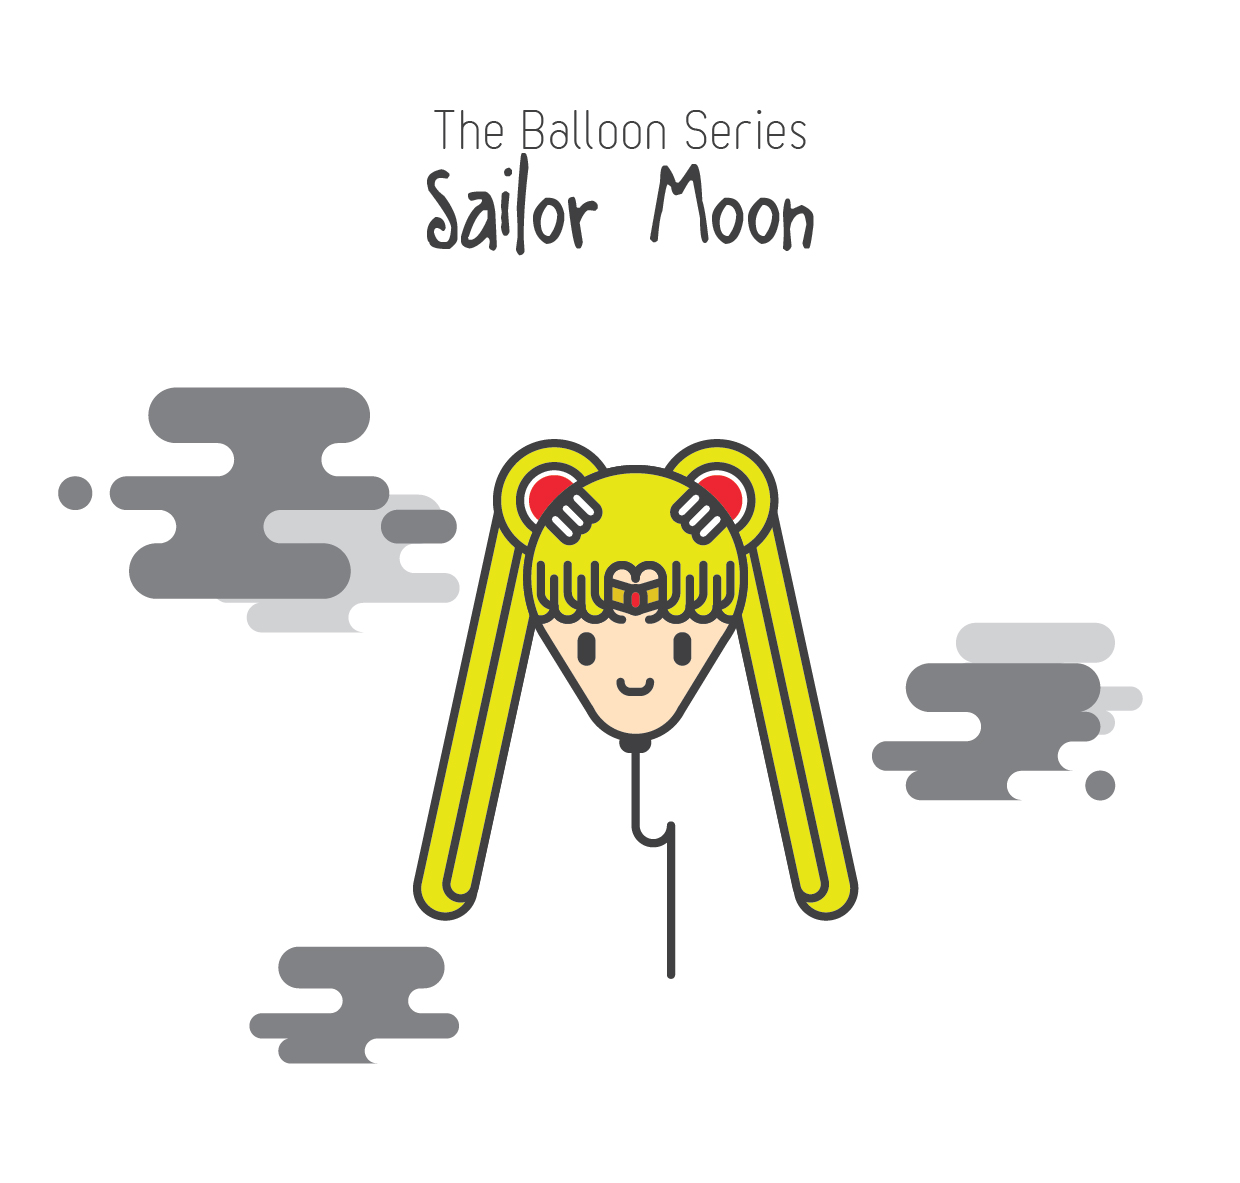 The Balloon Series - Sailor Moon